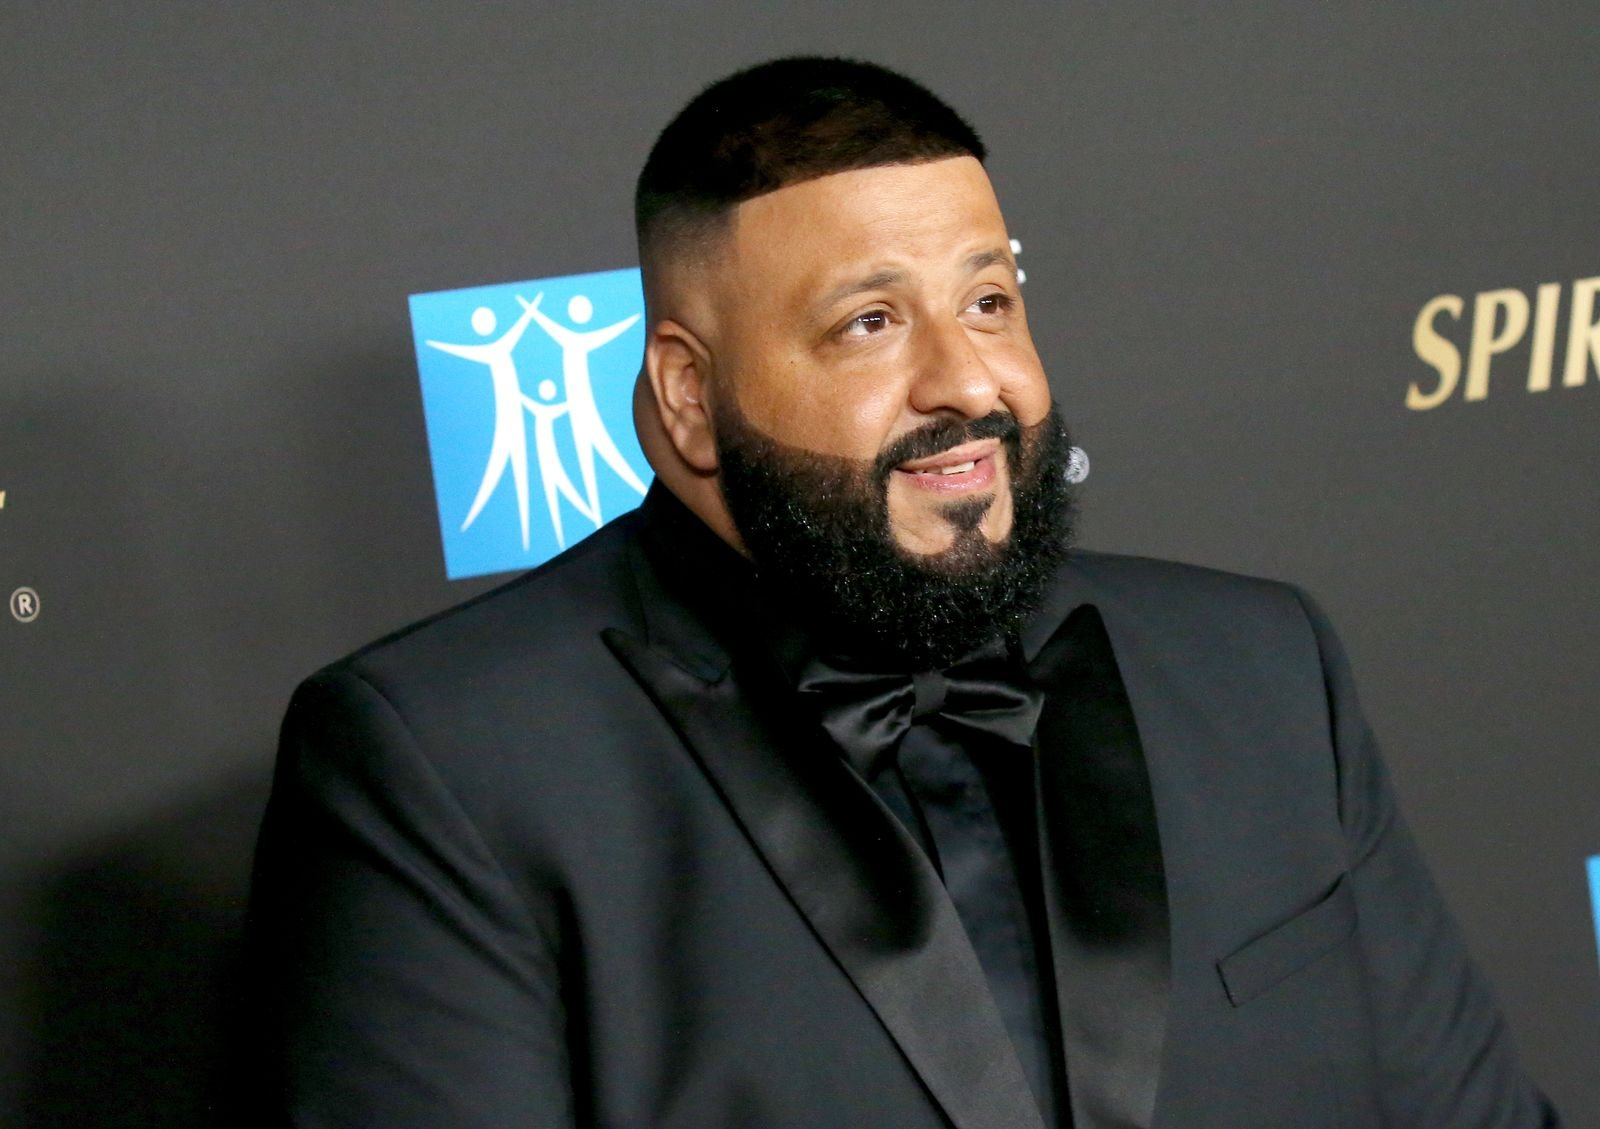 DJ Khaled at the City of Hope's Spirit of Life 2019 Gala held at The Barker Hanger on October 10, 2019 | Photo: Getty Images